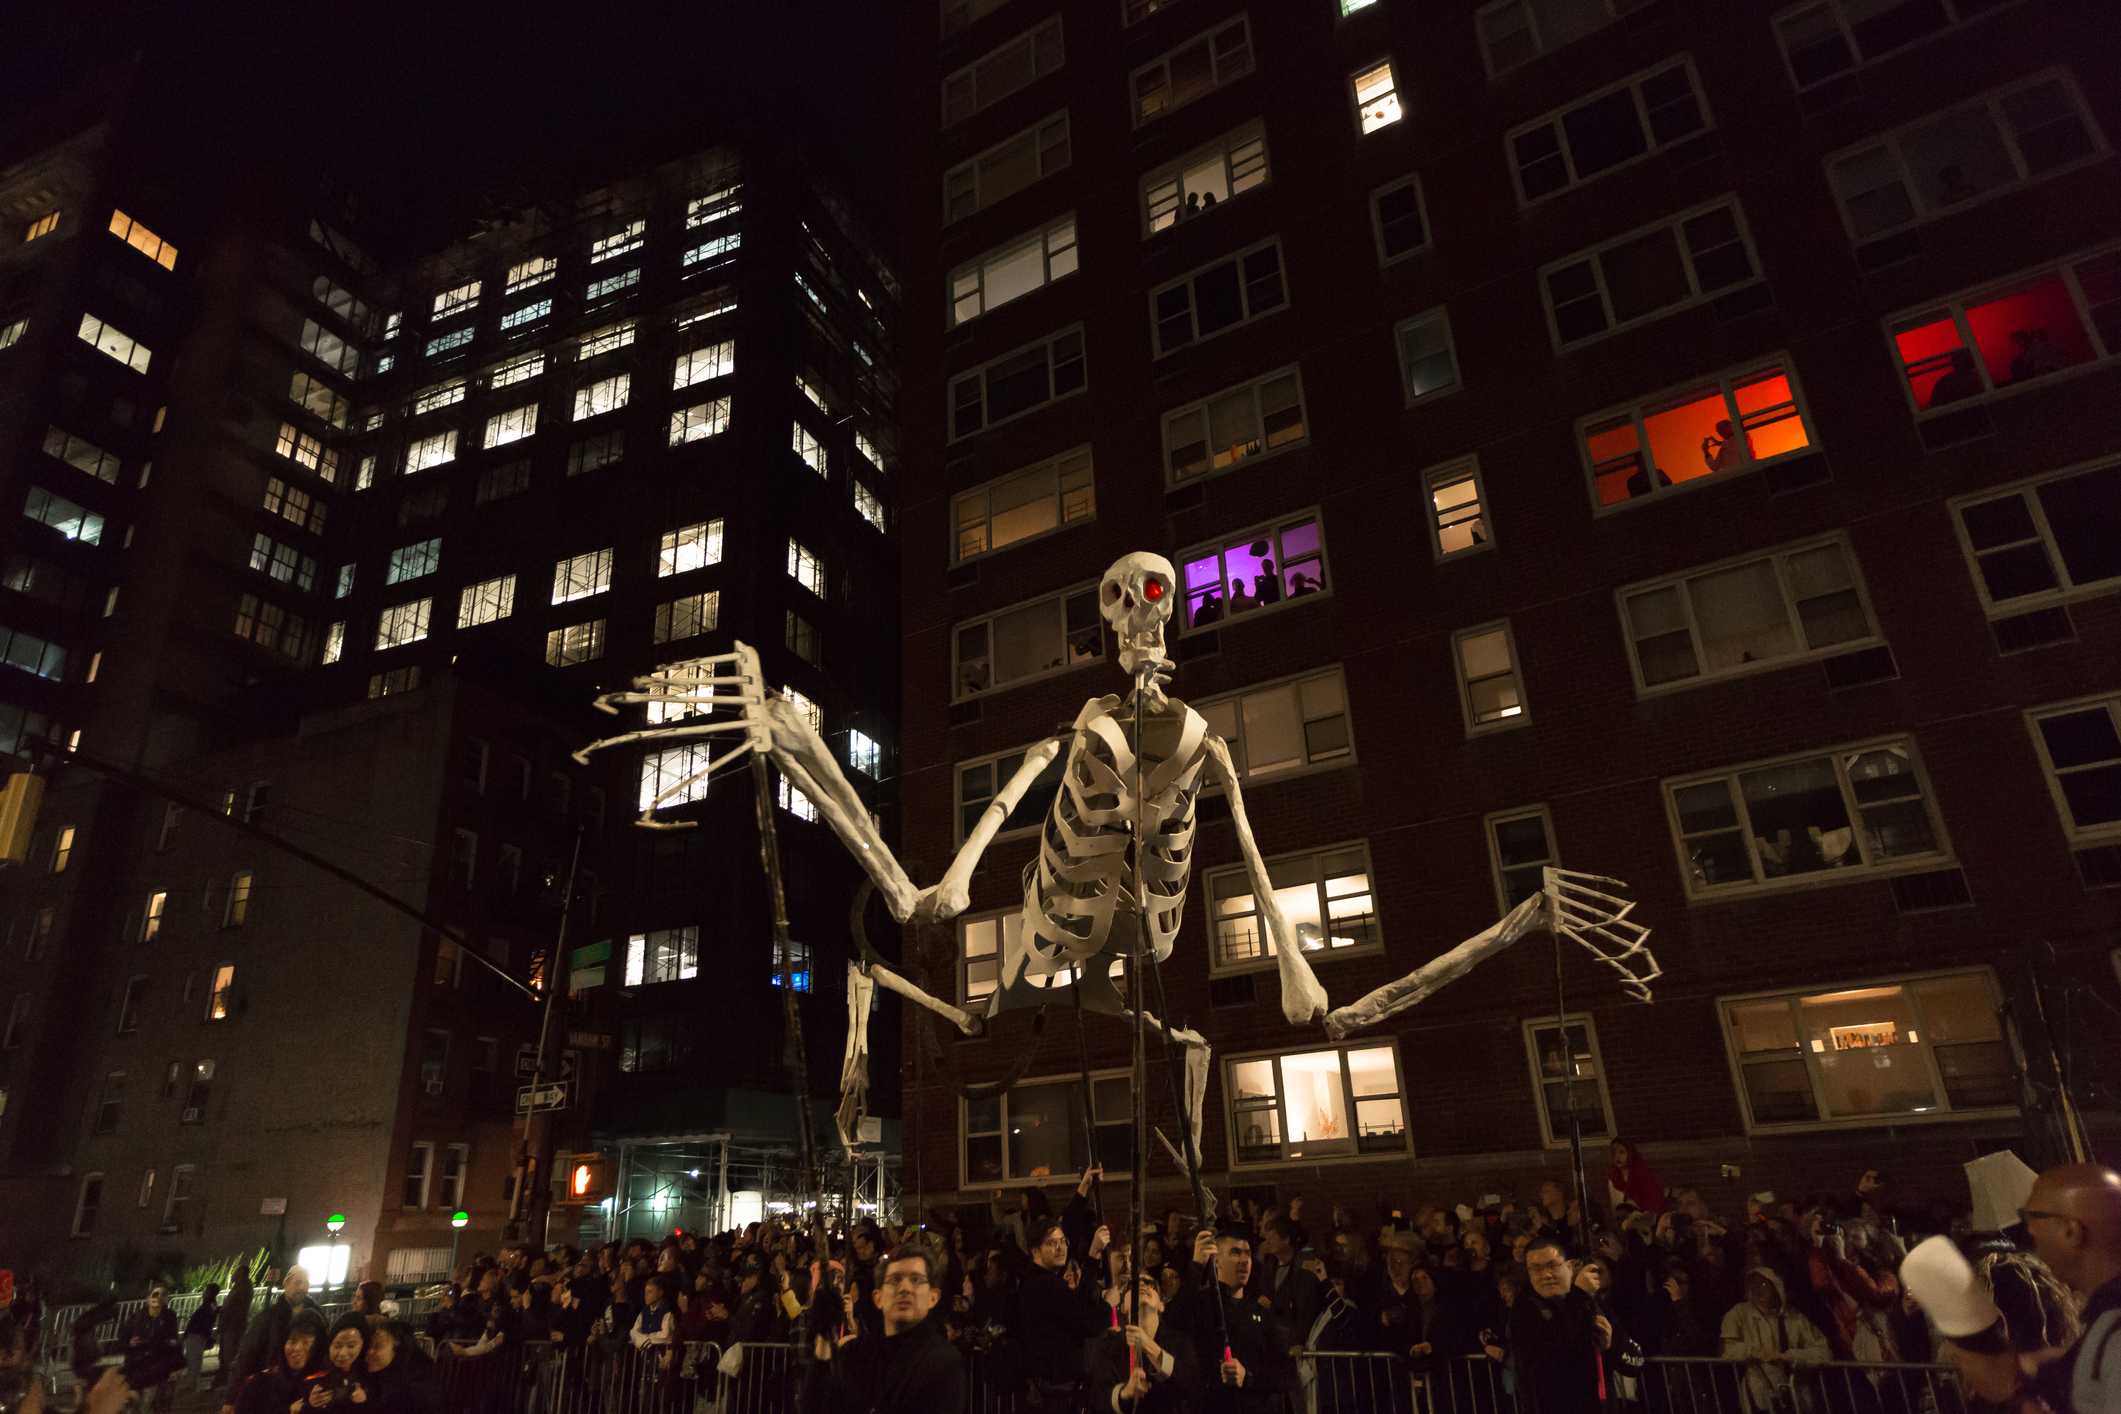 Halloween Parade in NYC 2019 image